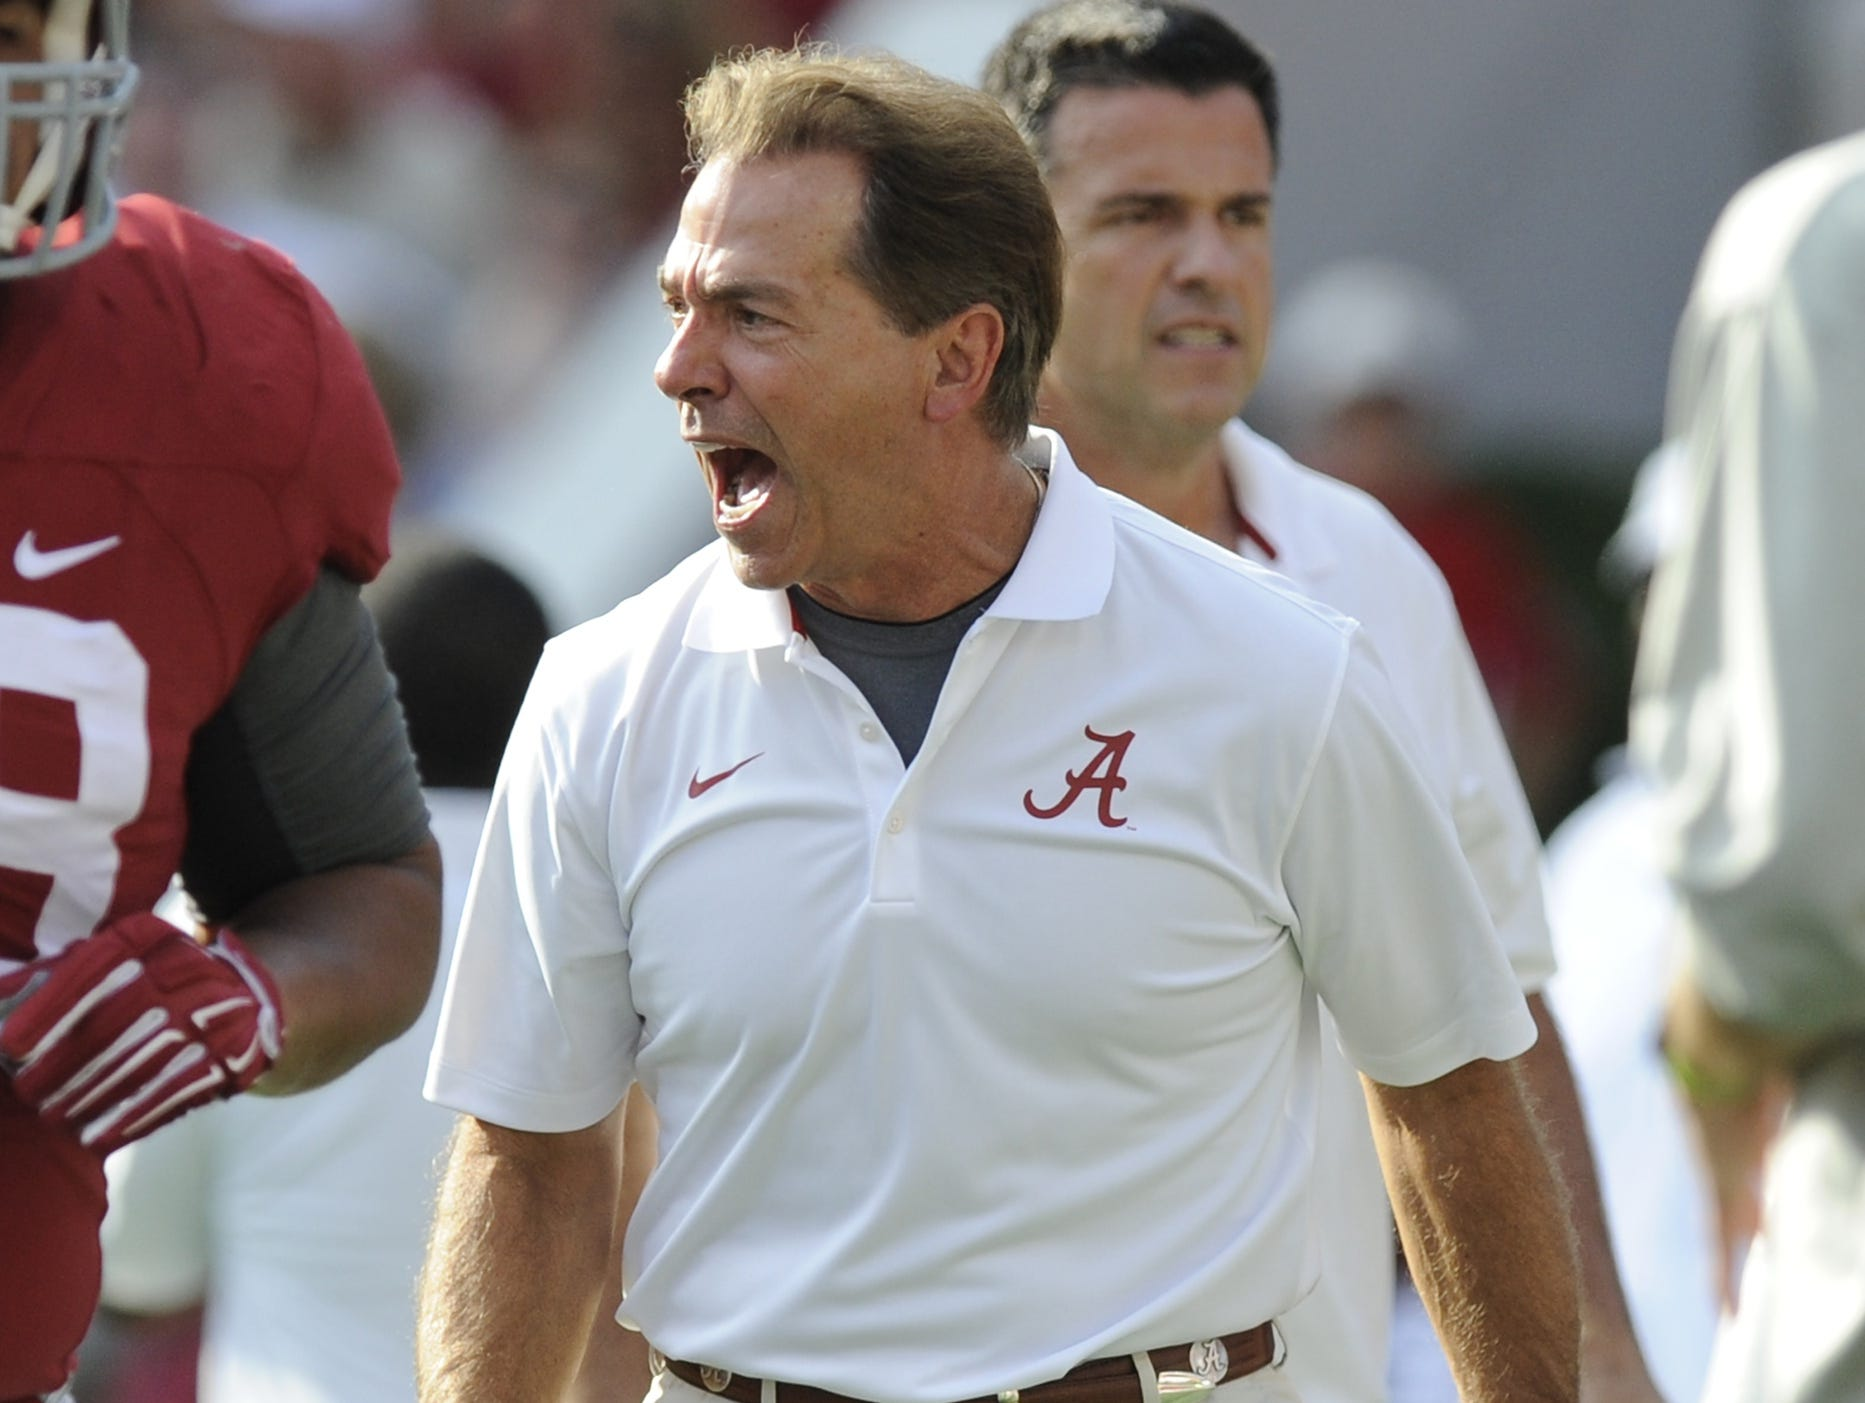 Nick Saban talks about Gov. Robert Bentley decision to remove Confederate flags last month.